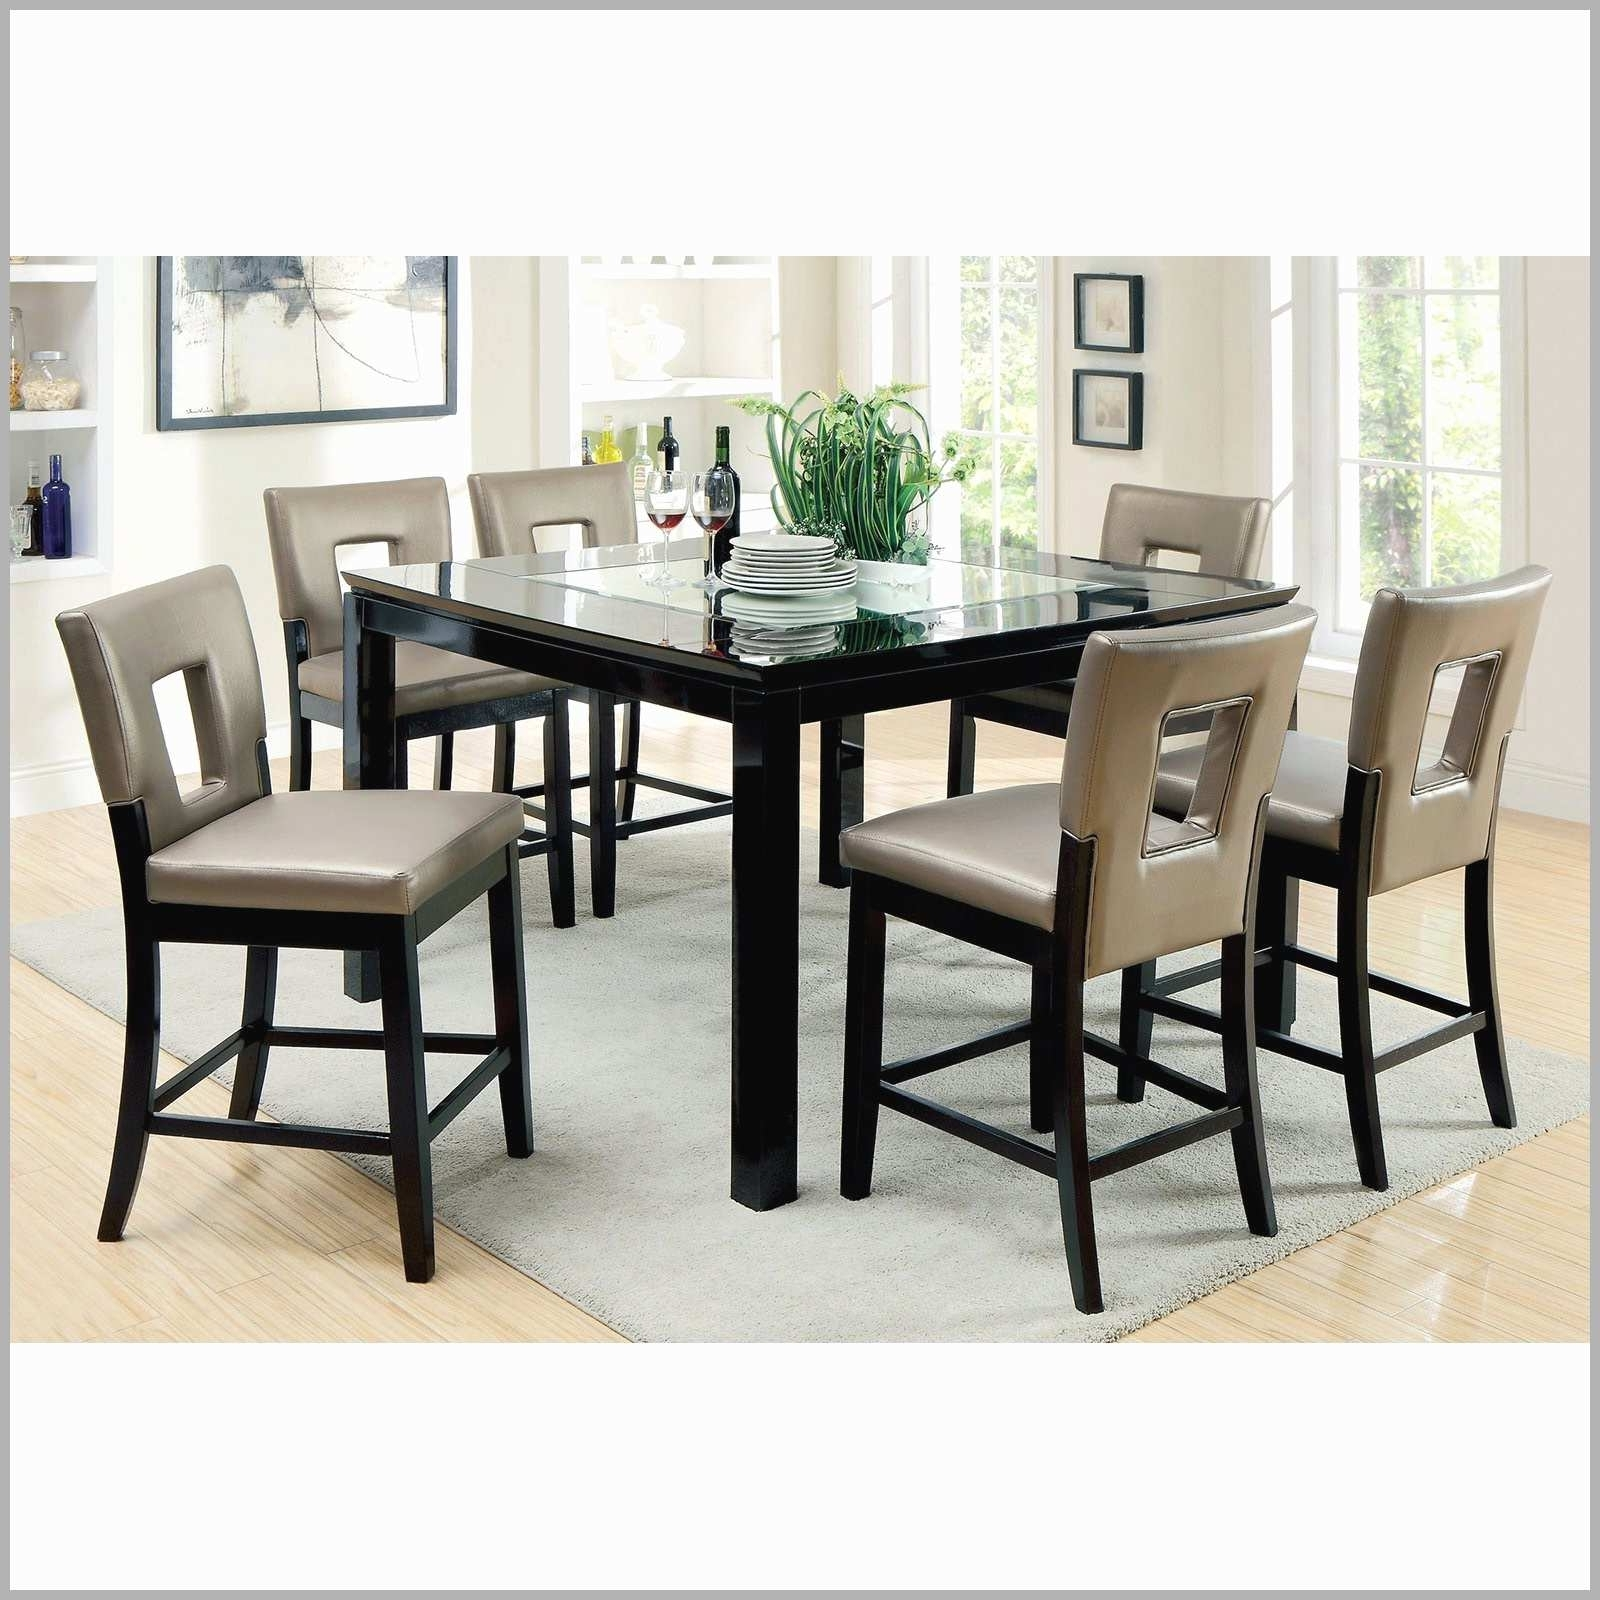 Dining Tables Seats 8 Inside Latest Round Dining Room Table Seats 8 Fresh 8 Person Square Dining Table (View 25 of 25)